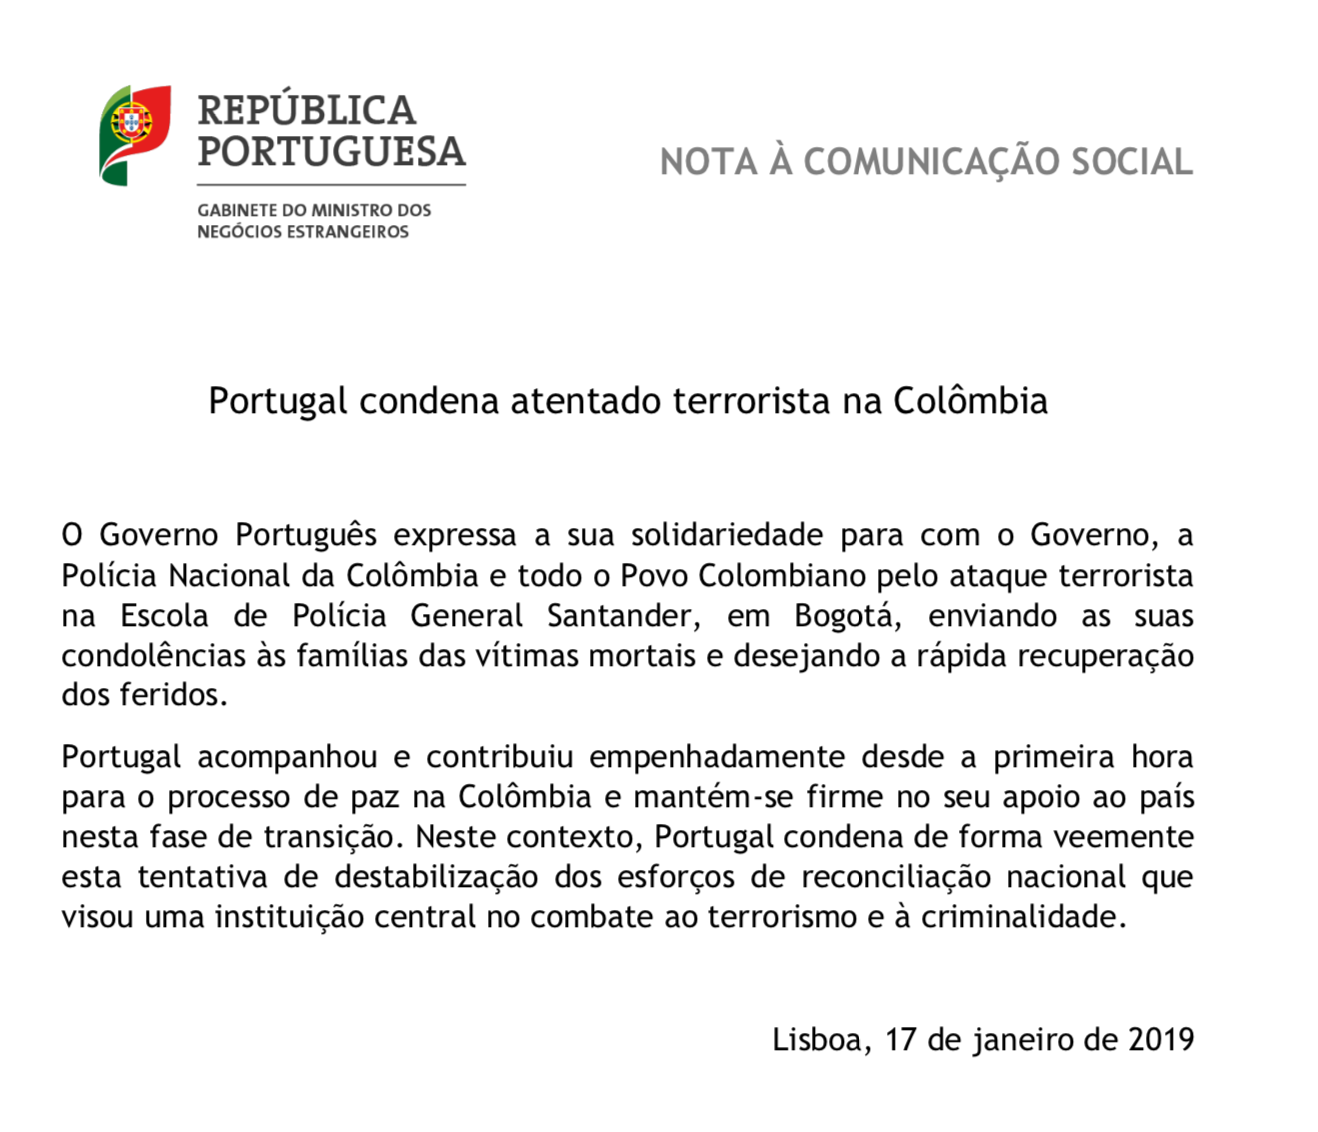 captura de ecra 2019 01 17 as 20.21.57